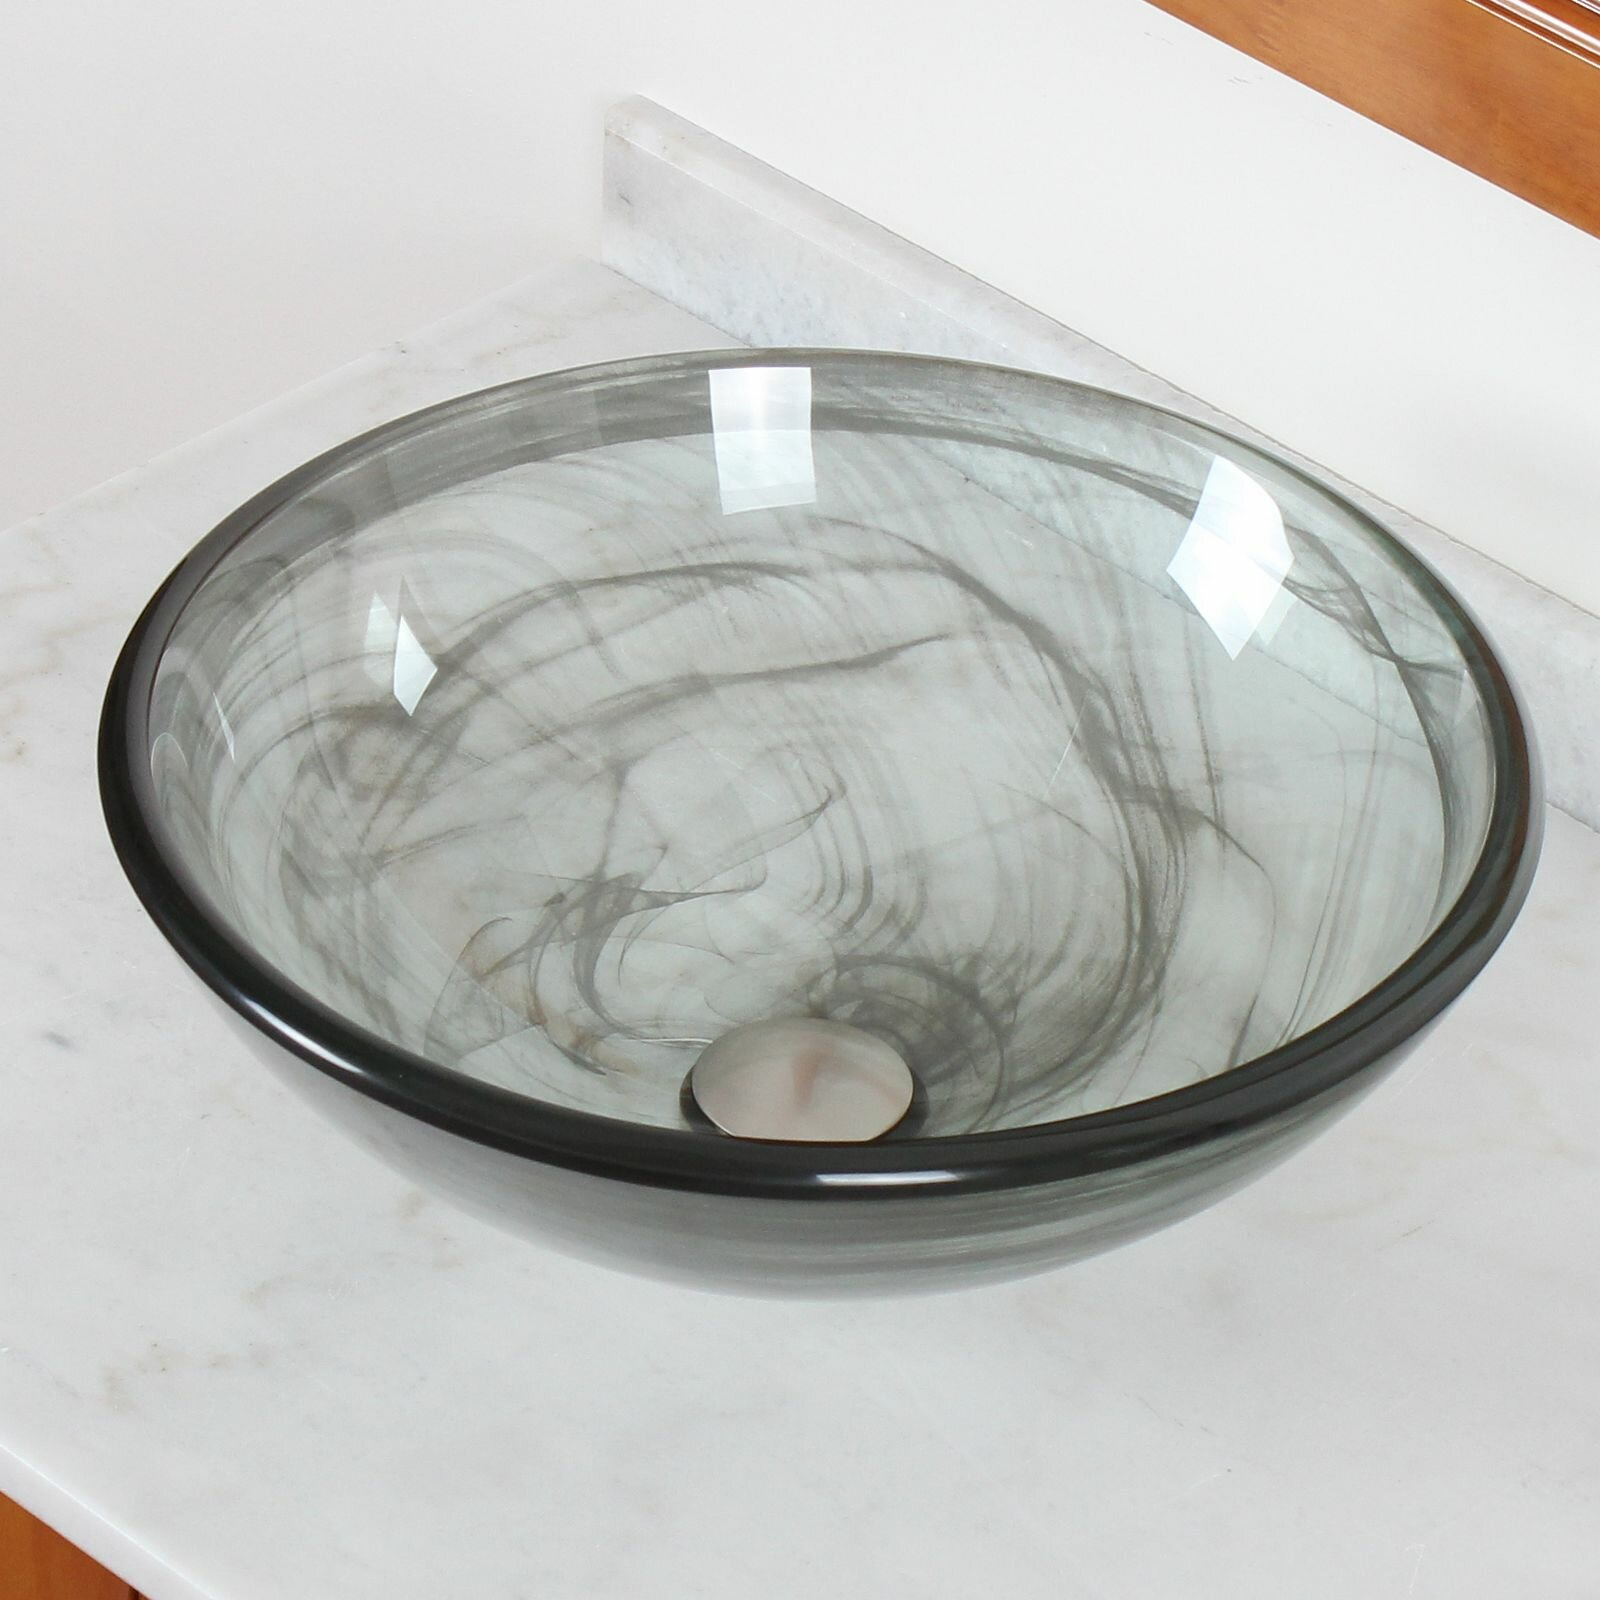 Glass Vessel Bowls : Elite Double Layered Tempered Glass Bowl Vessel Bathroom Sink ...